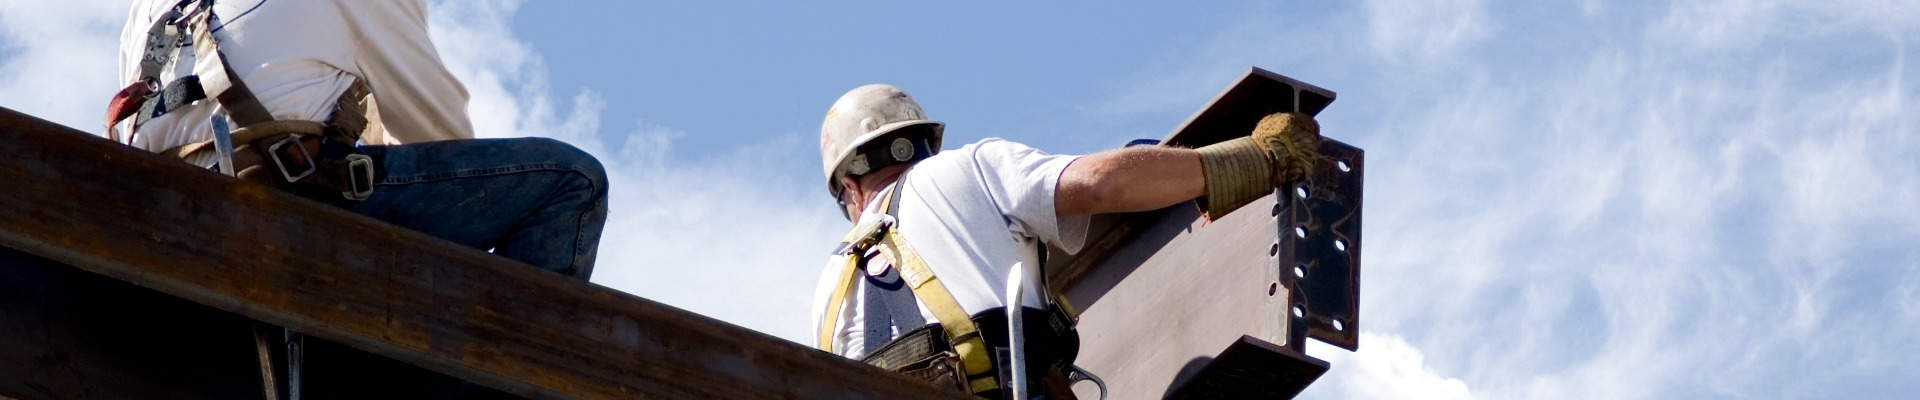 Hero Image for Working at Heights Training